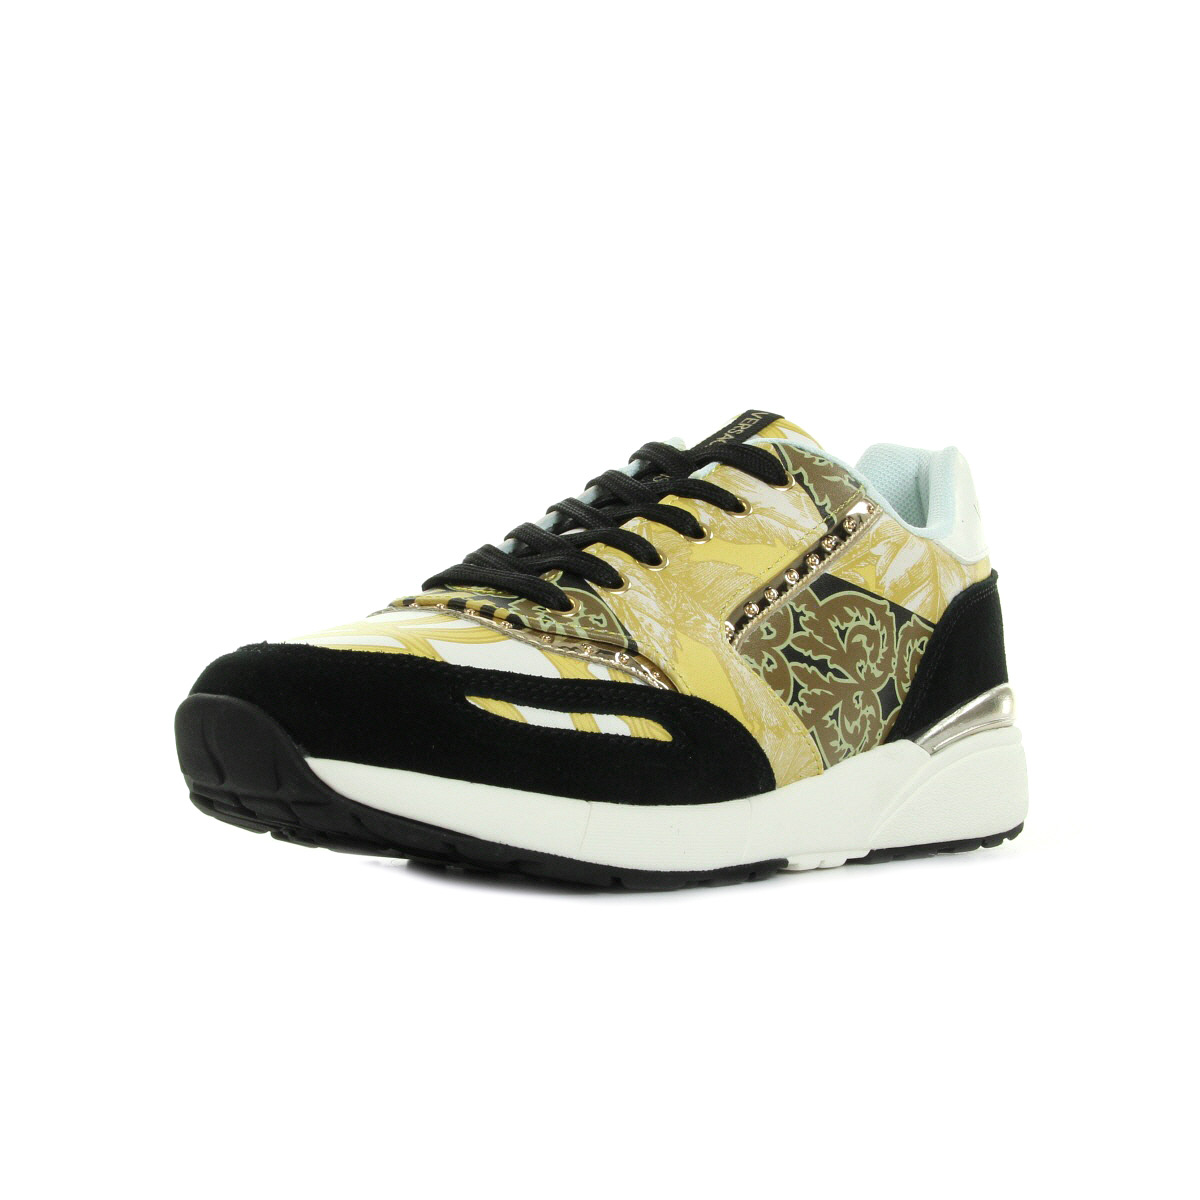 versace jeans sneaker donna disg1coated printed e0vpbsg1901 chaussures homme homme. Black Bedroom Furniture Sets. Home Design Ideas